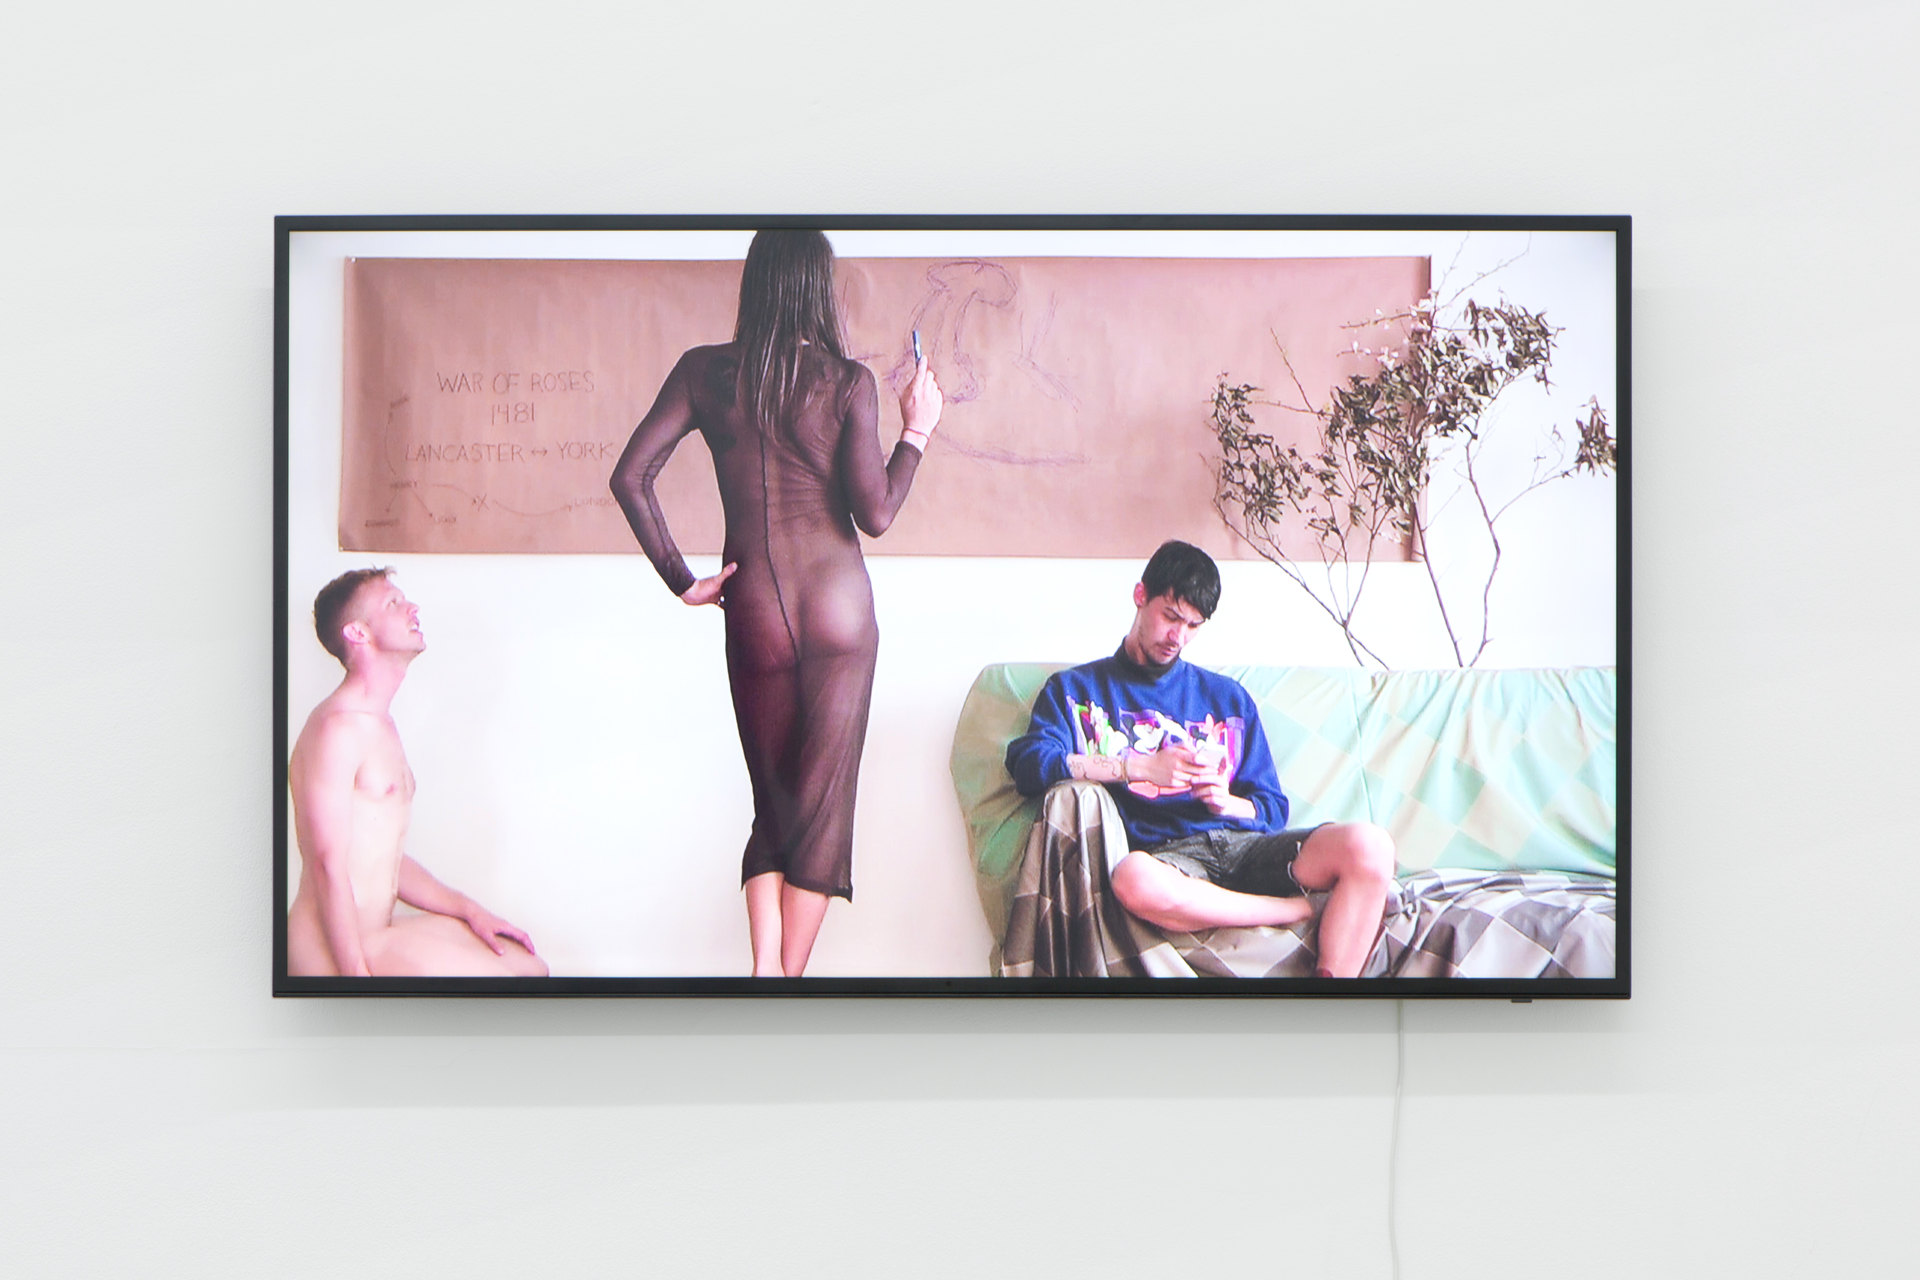 Loretta Fahrenholz, 'Implosion', 2011 (Video), Perverts, 2017, Cell Project Space